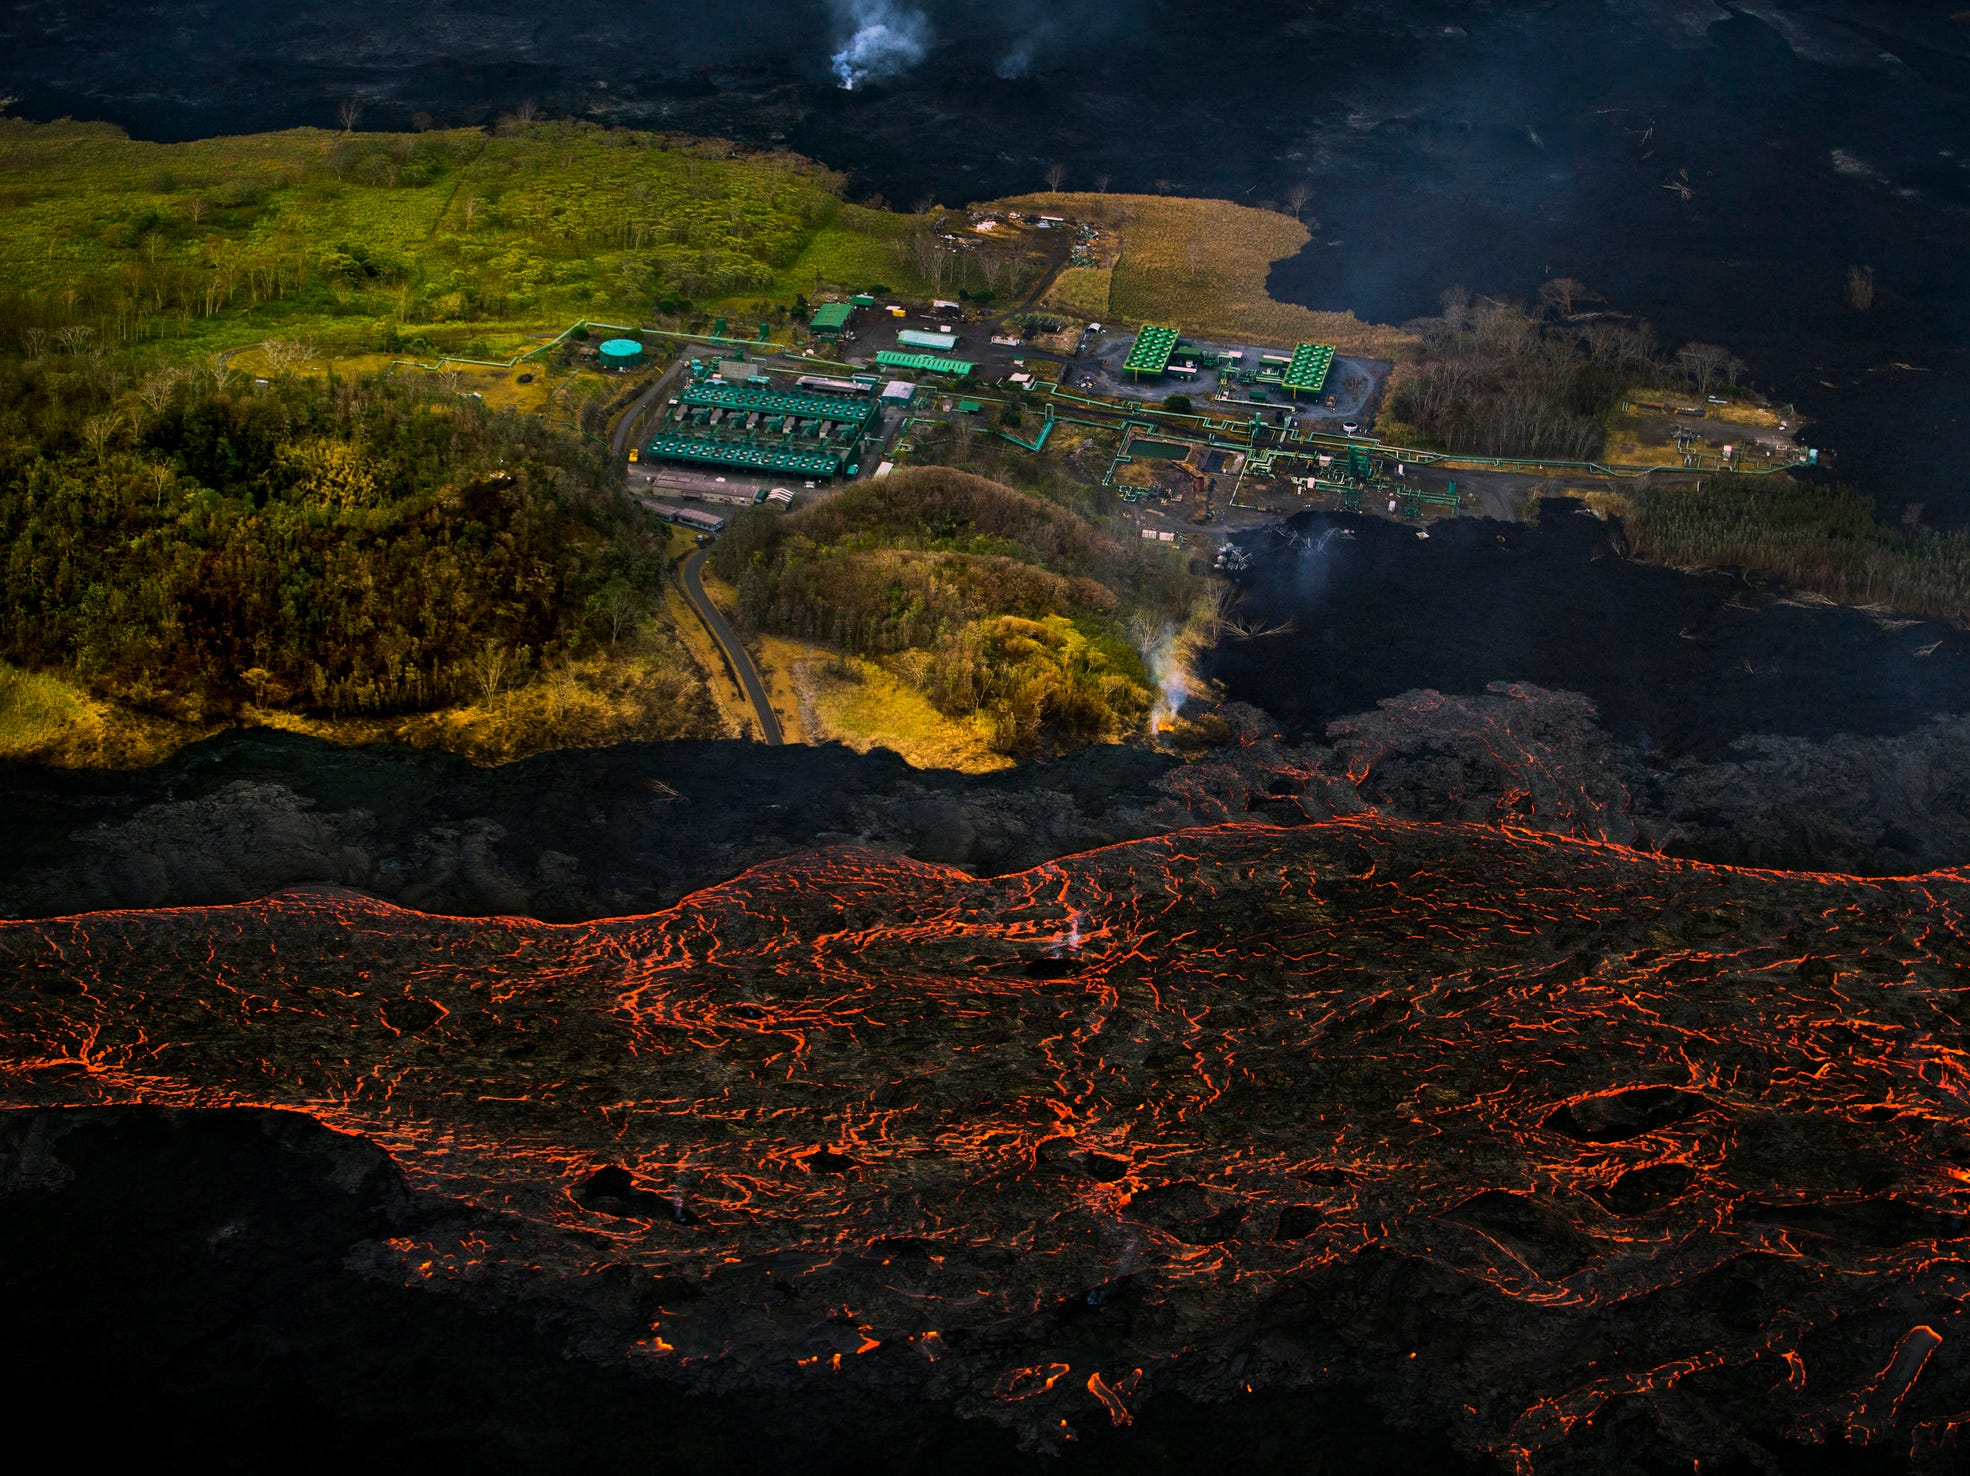 Lava from the Kilauea volcano flows near the Puna Geothermal Venture power plant in Pahoa, Hawaii, on June 10, 2018.